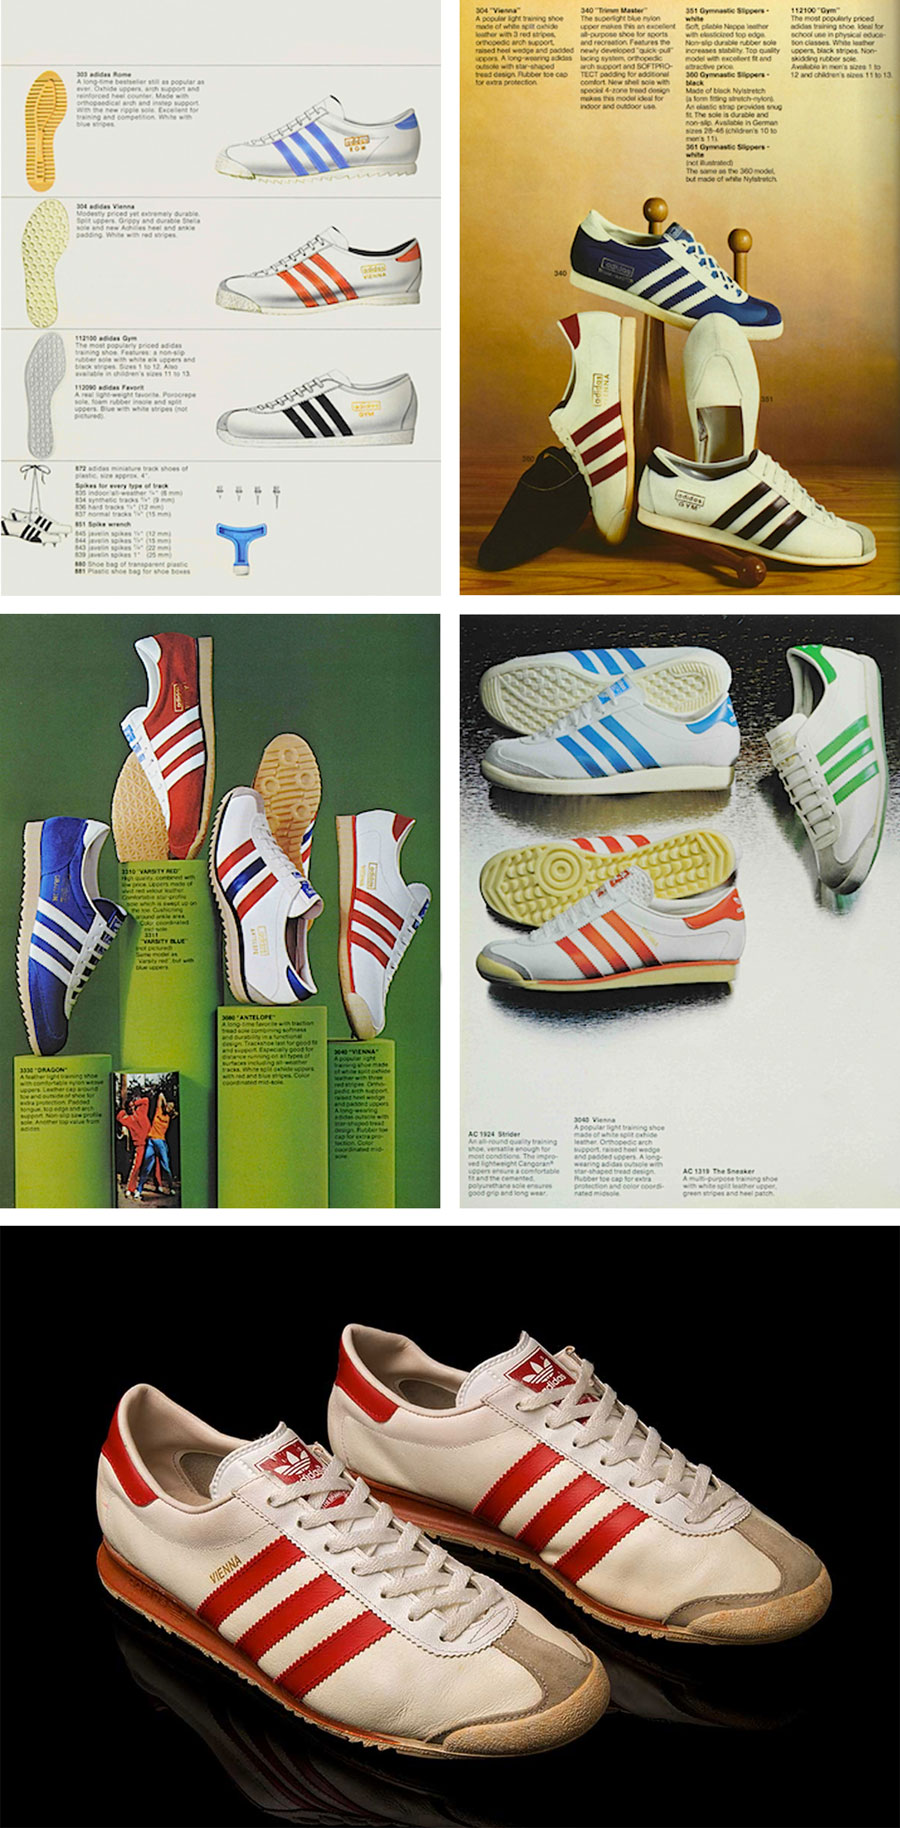 size x adidas Originals Vienna City Series (Mood)